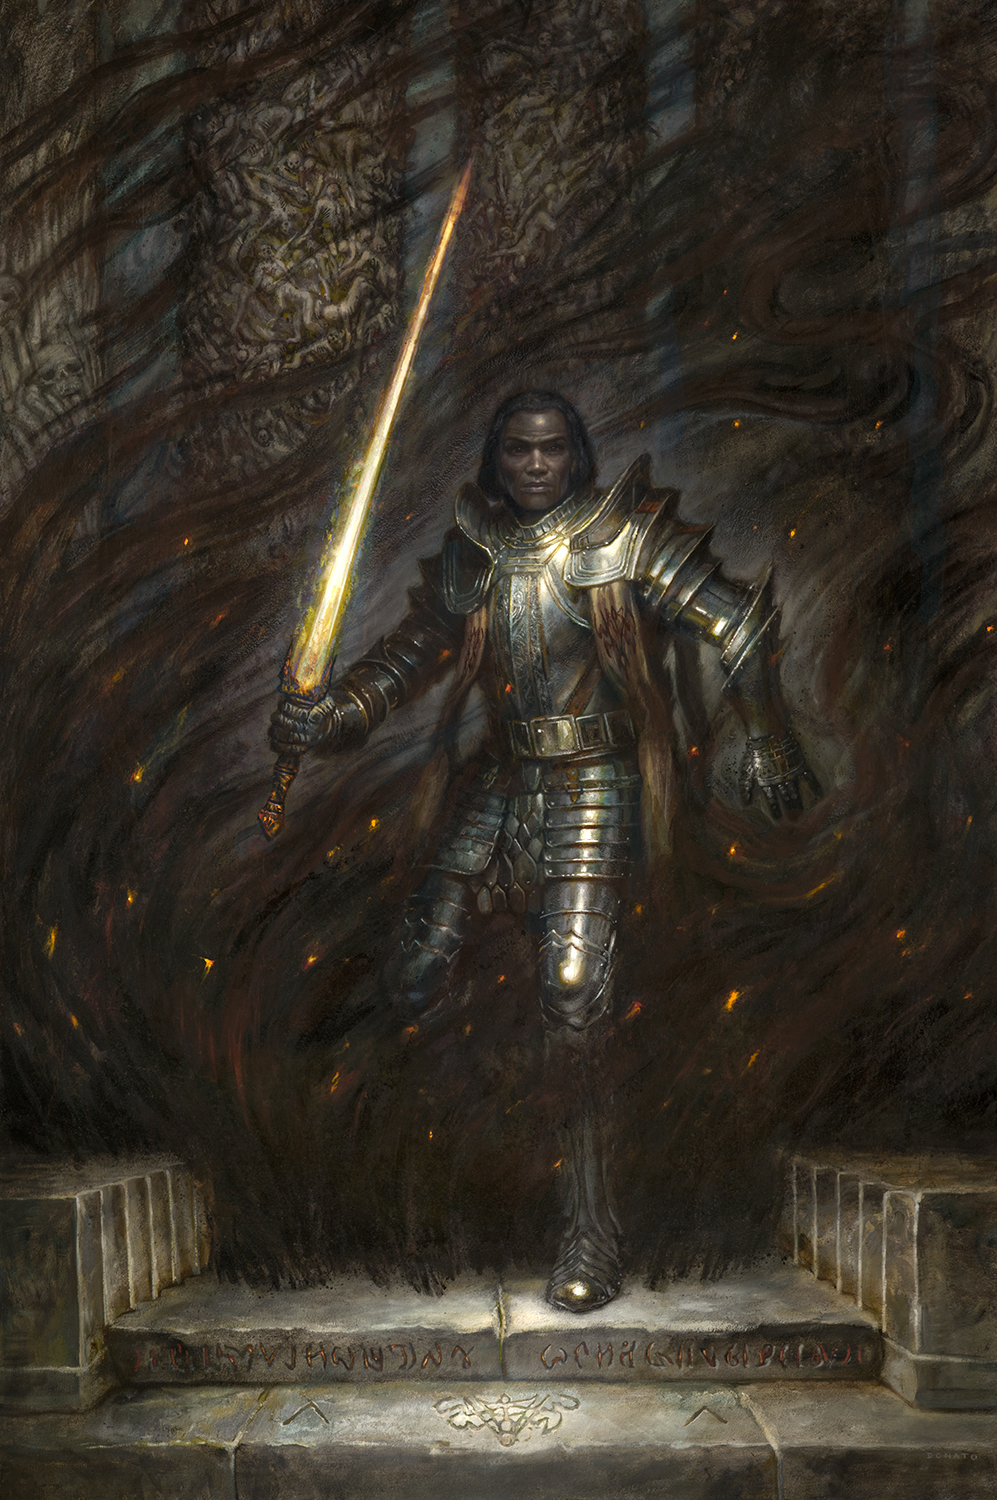 Stormlight Archive illustration of Taln by Donato Giancola